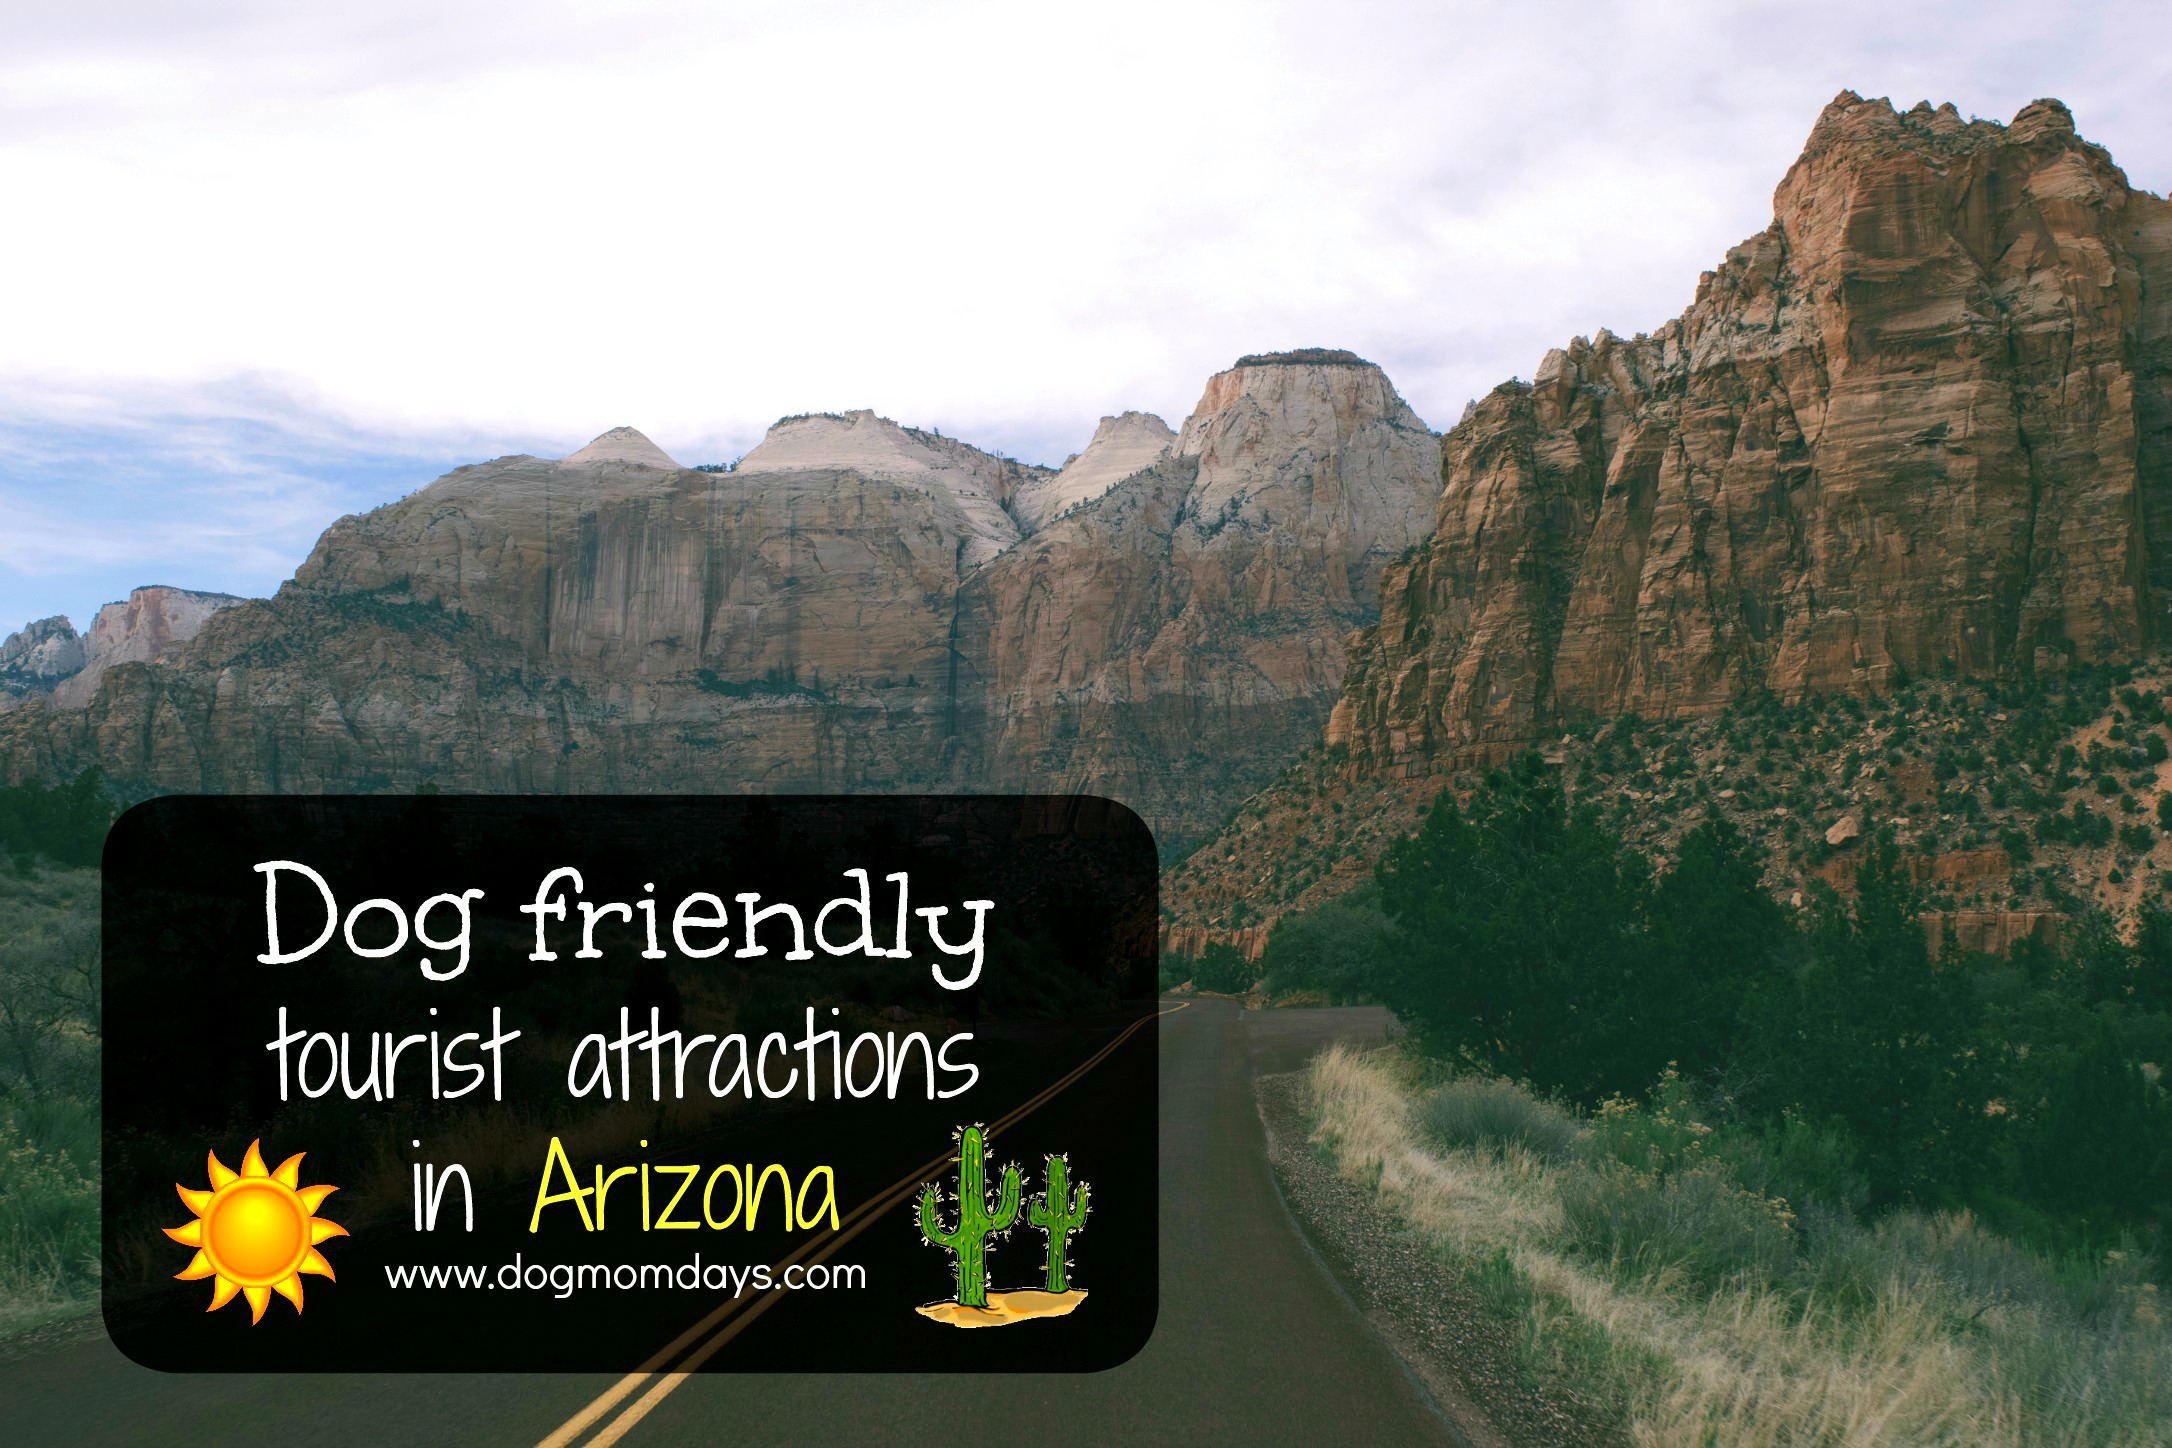 dog friendly tourist attractions in Arizona